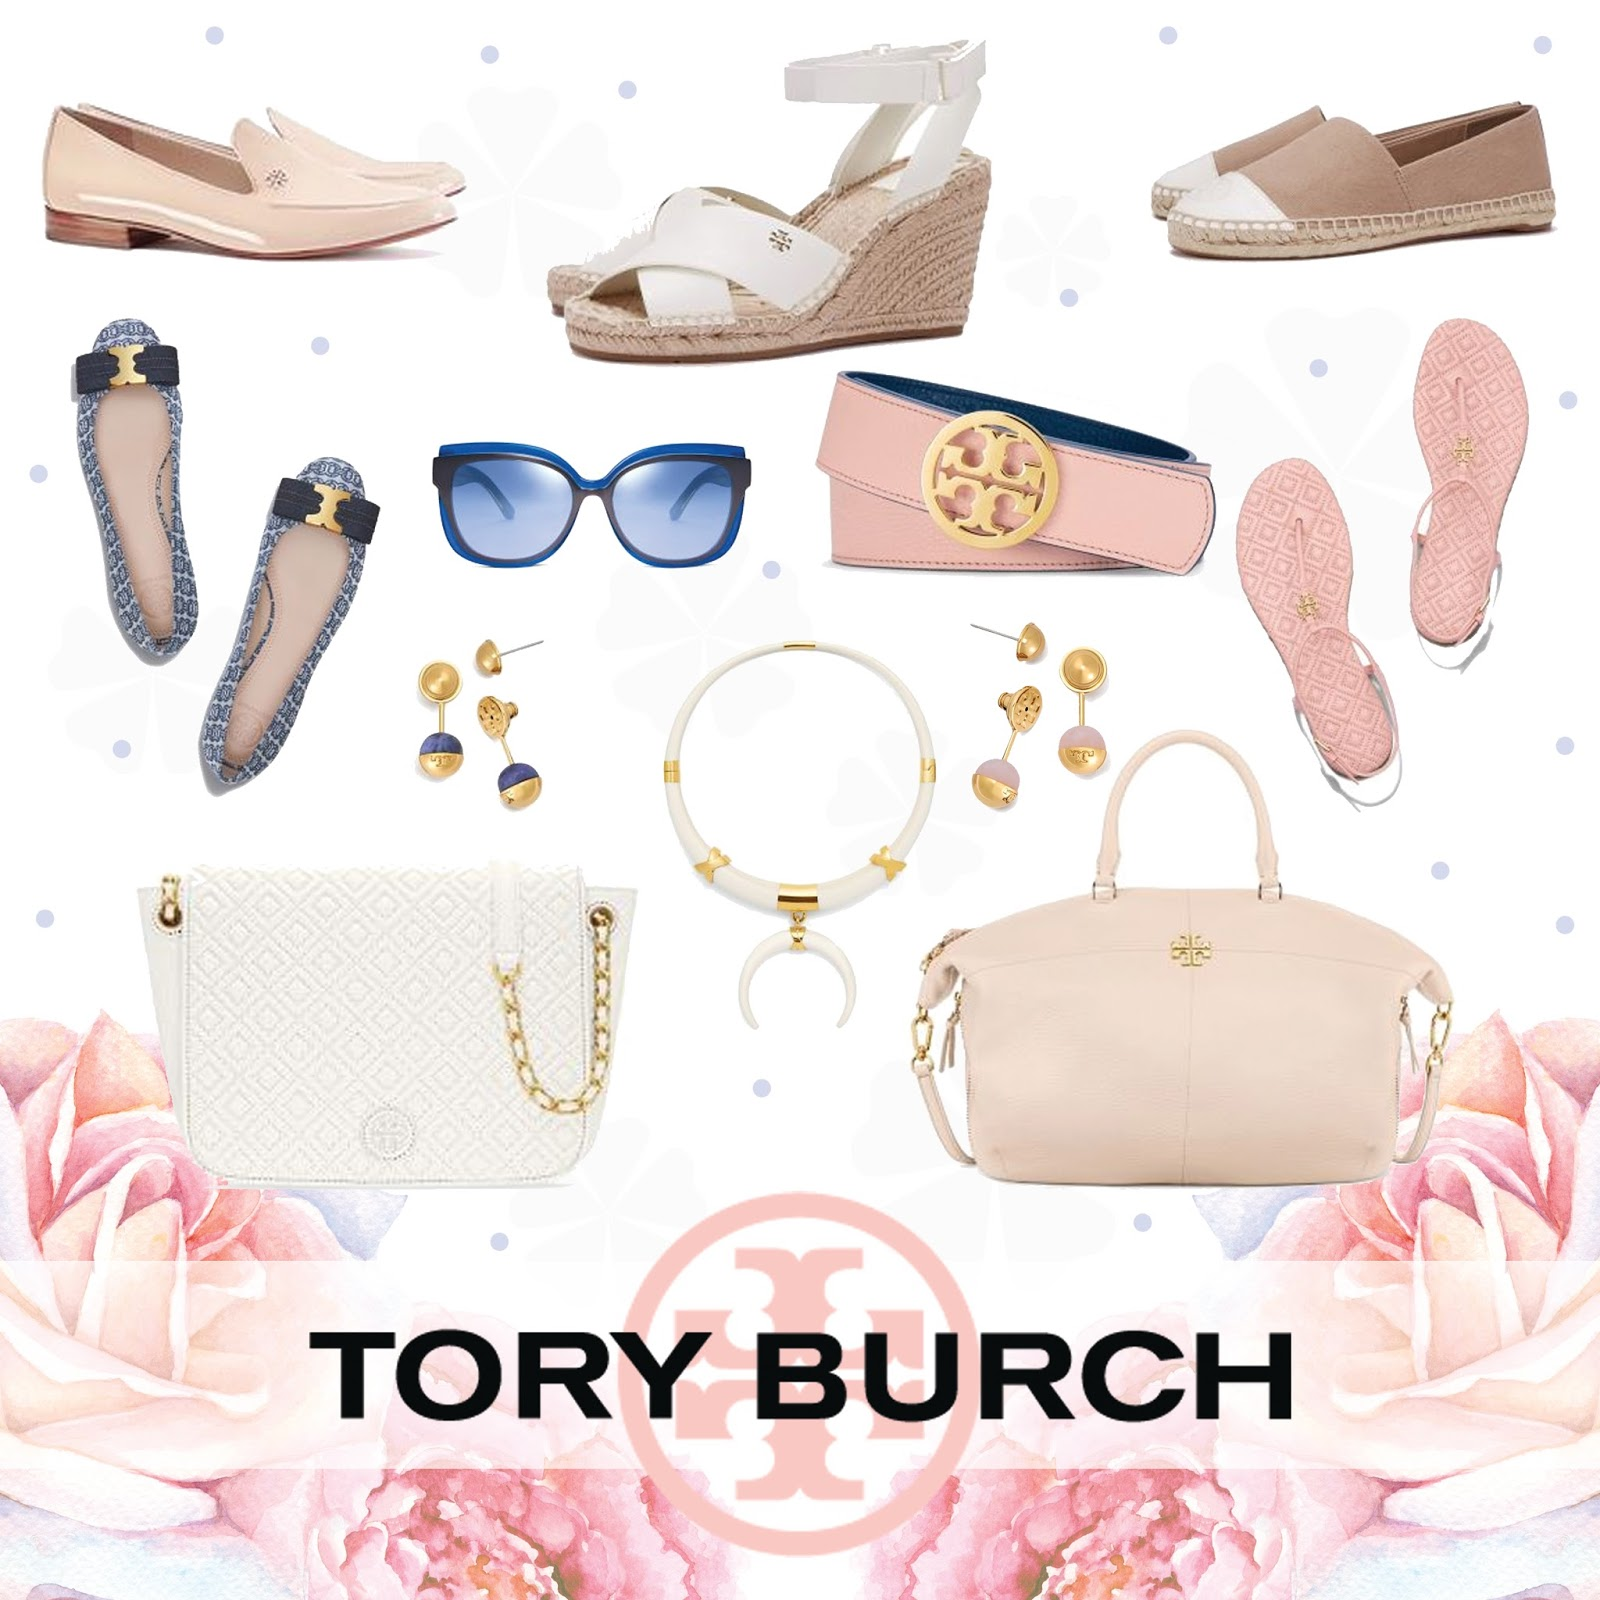 Tory Burch Private Sale Top Picks - Erica Valentin